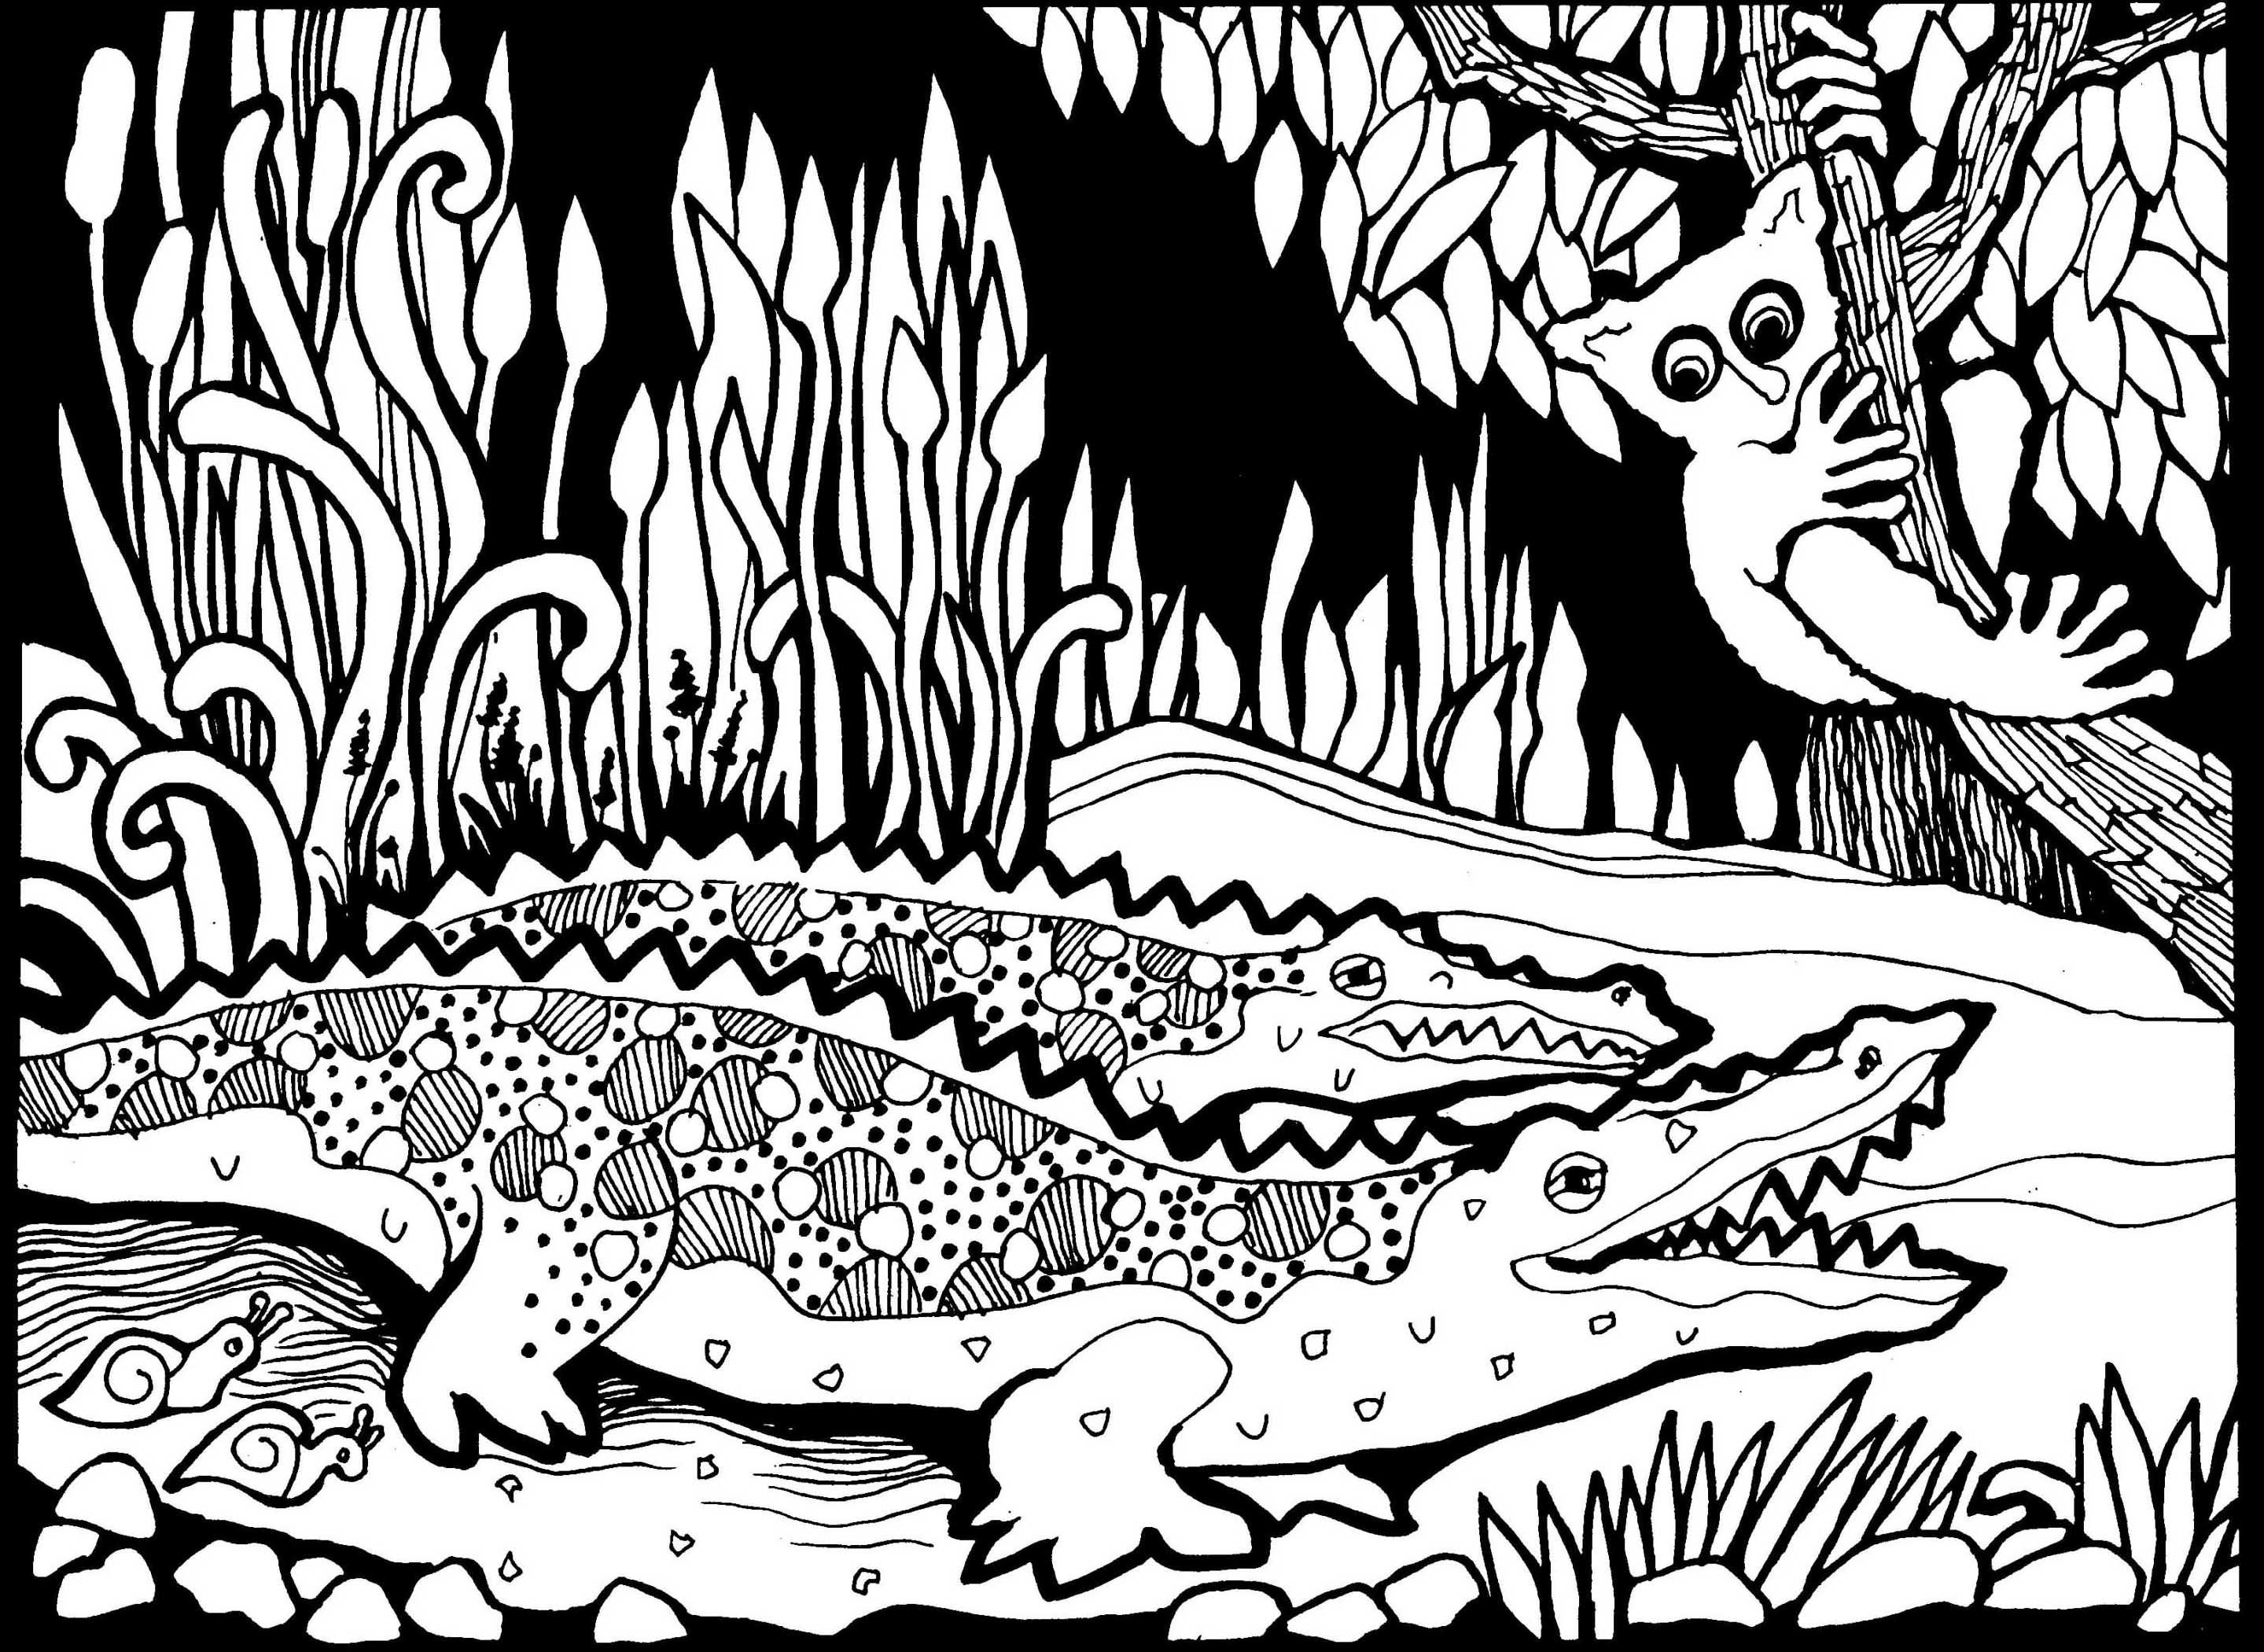 Africa crocodiles - Africa Adult Coloring Pages